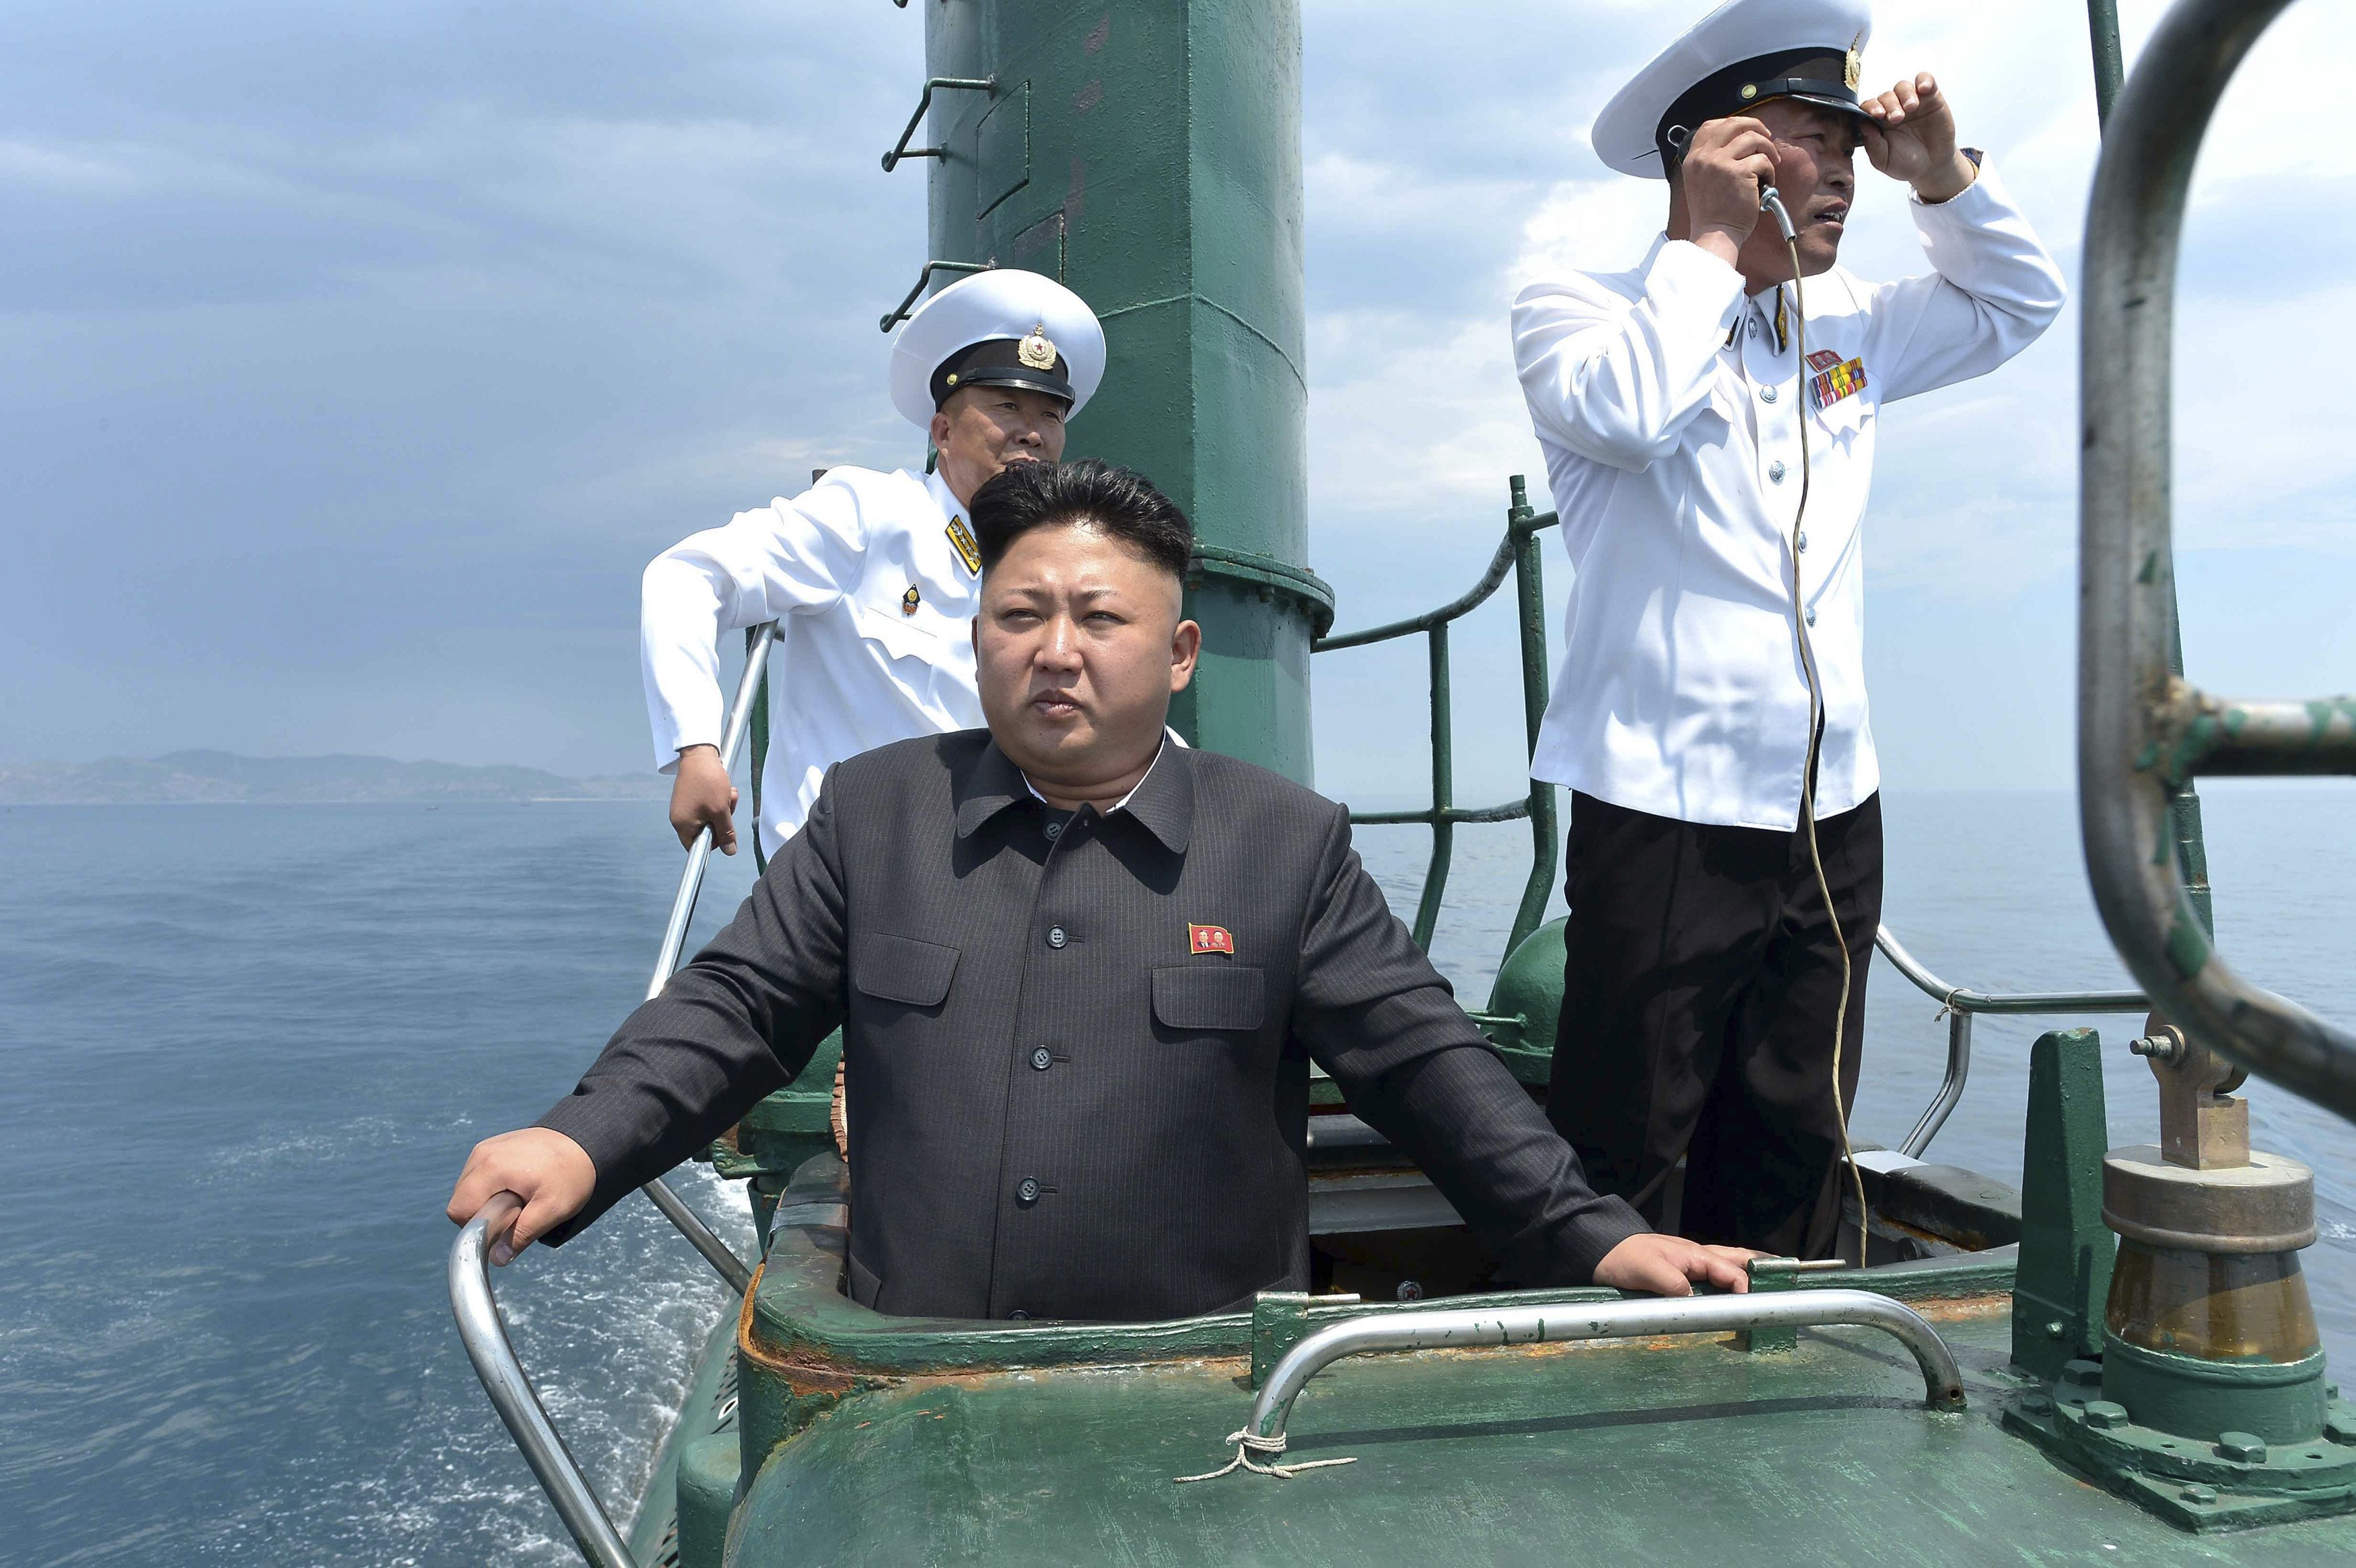 North Korean Submarine Makes Long, Strange Trip, Hinting At Possible Sub-Launched Missile Test